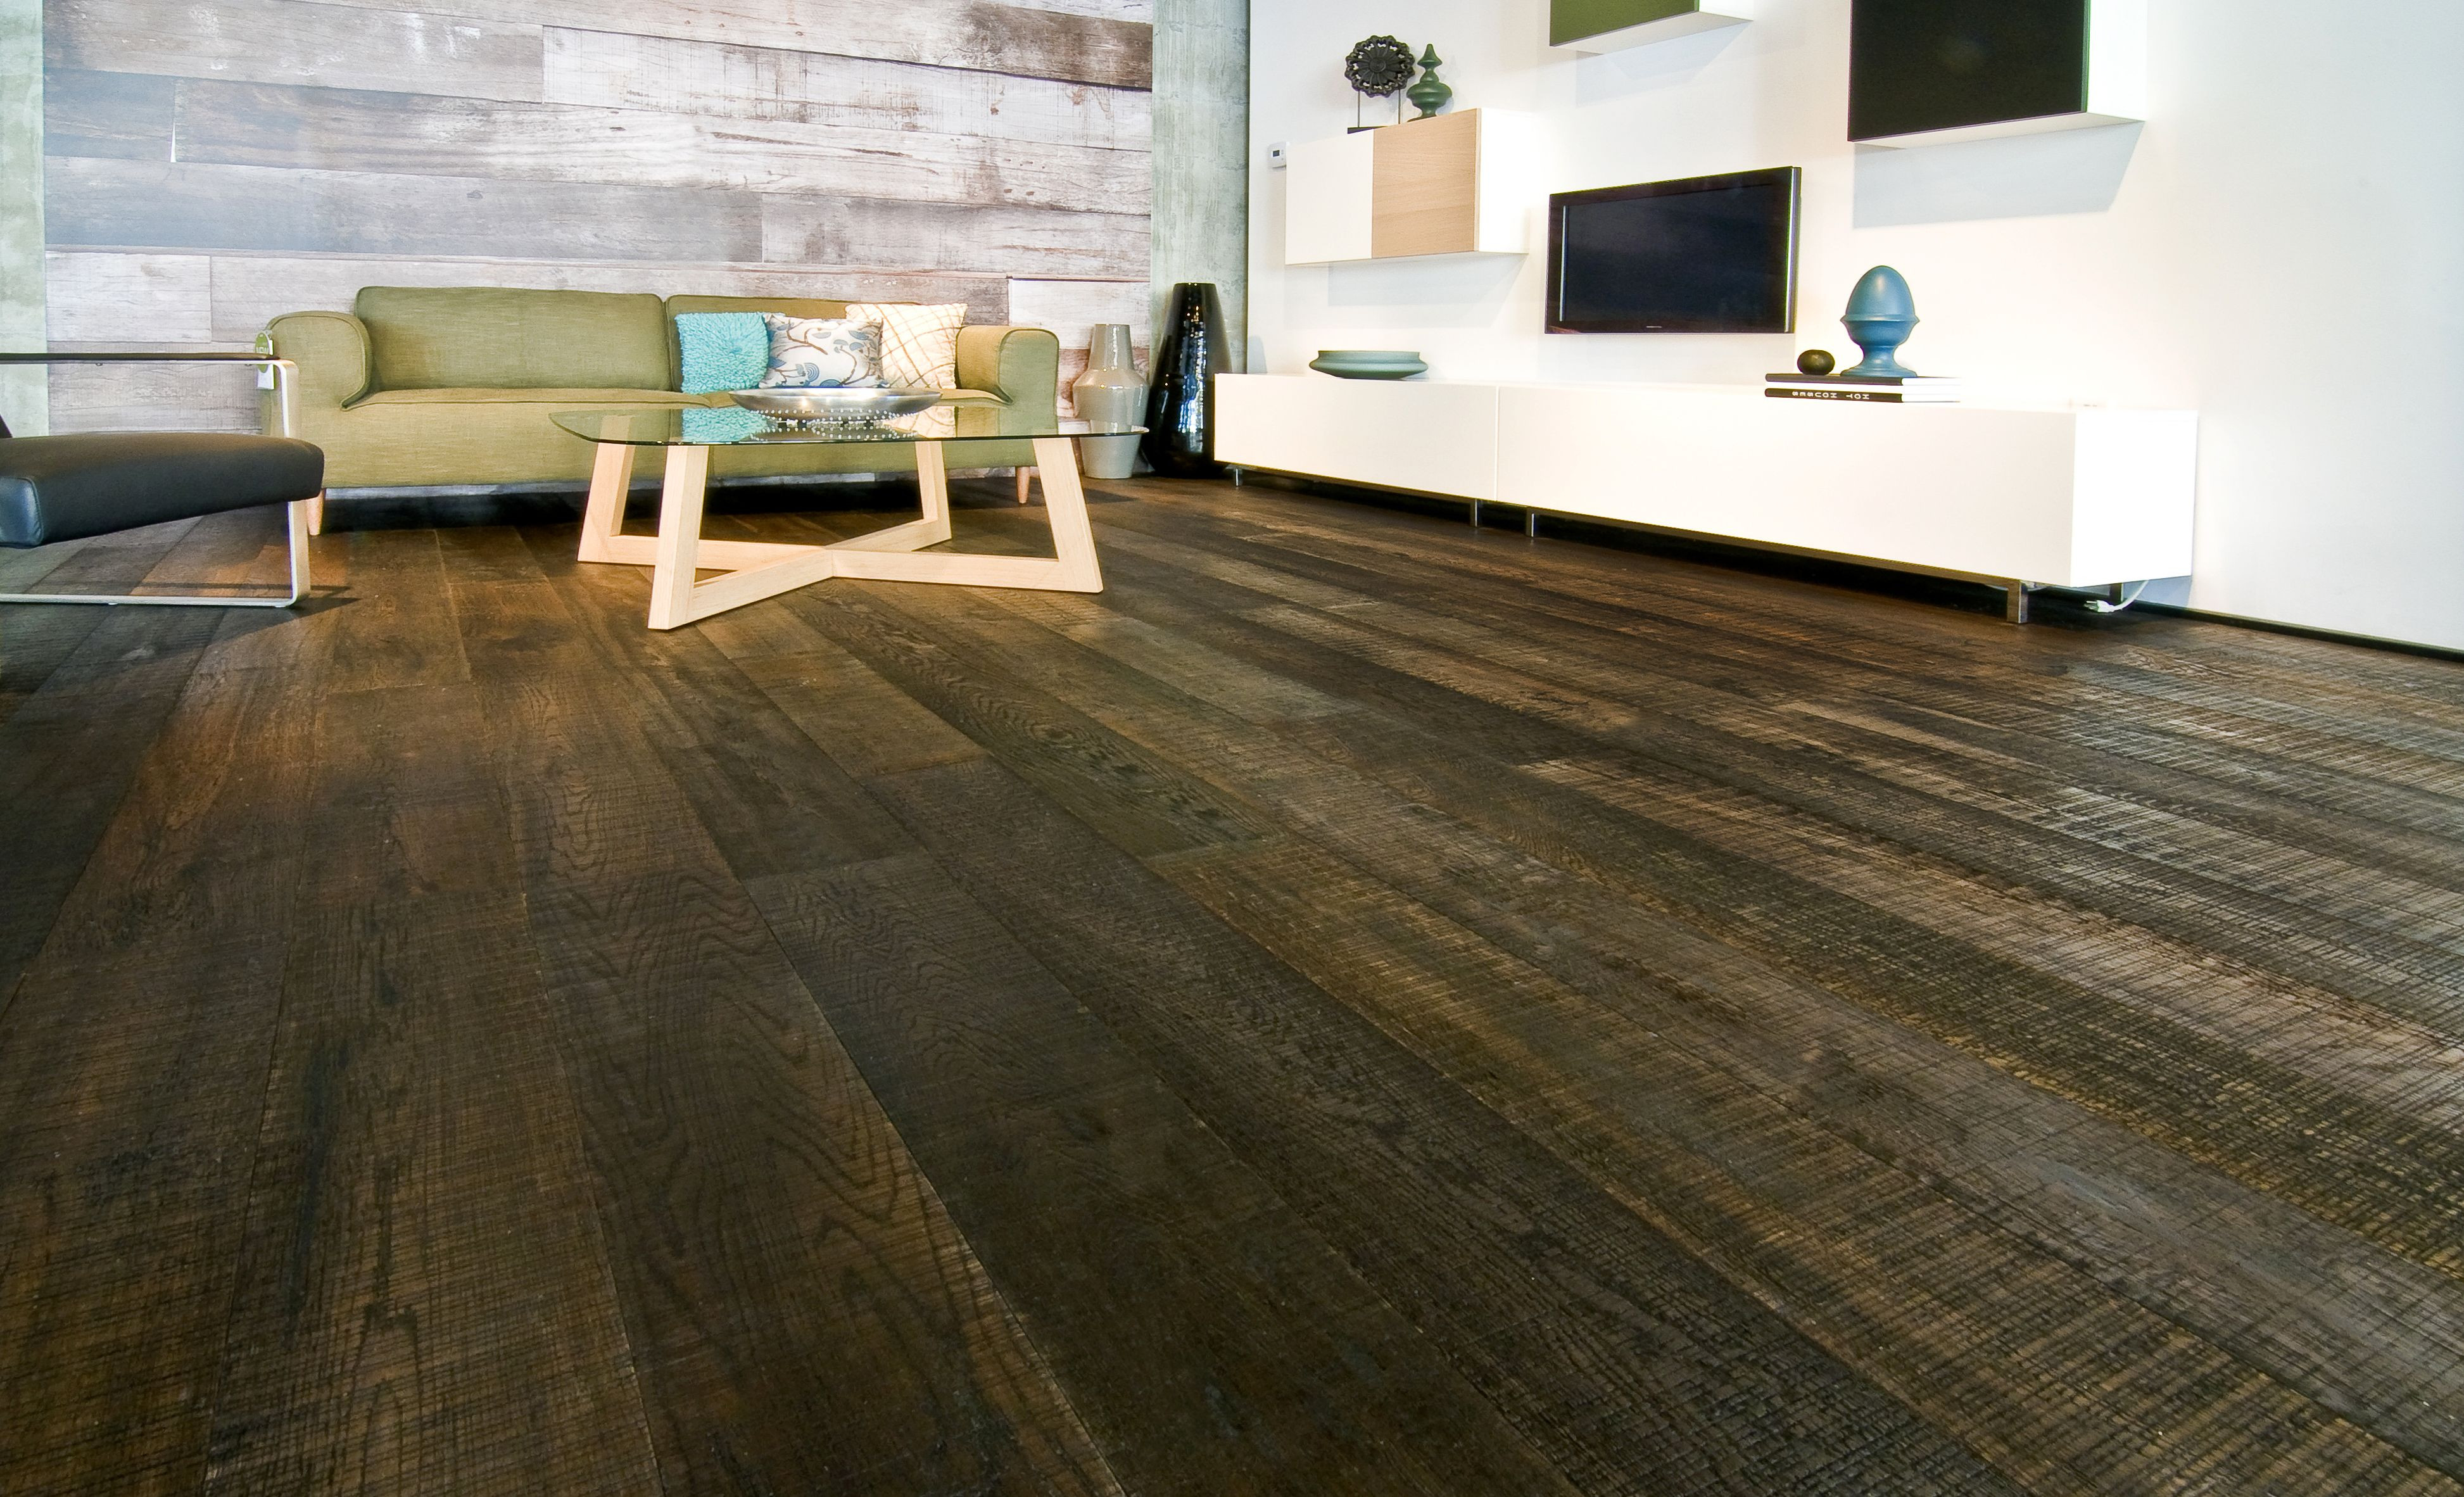 bamboo hardwood flooring vs oak of duchateau fine sawn ebony hardwood flooring get the rustic look of pertaining to duchateau fine sawn ebony hardwood flooring get the rustic look of genuine solid hardwood flooring in deep dark ebony to create the perfect contemporary